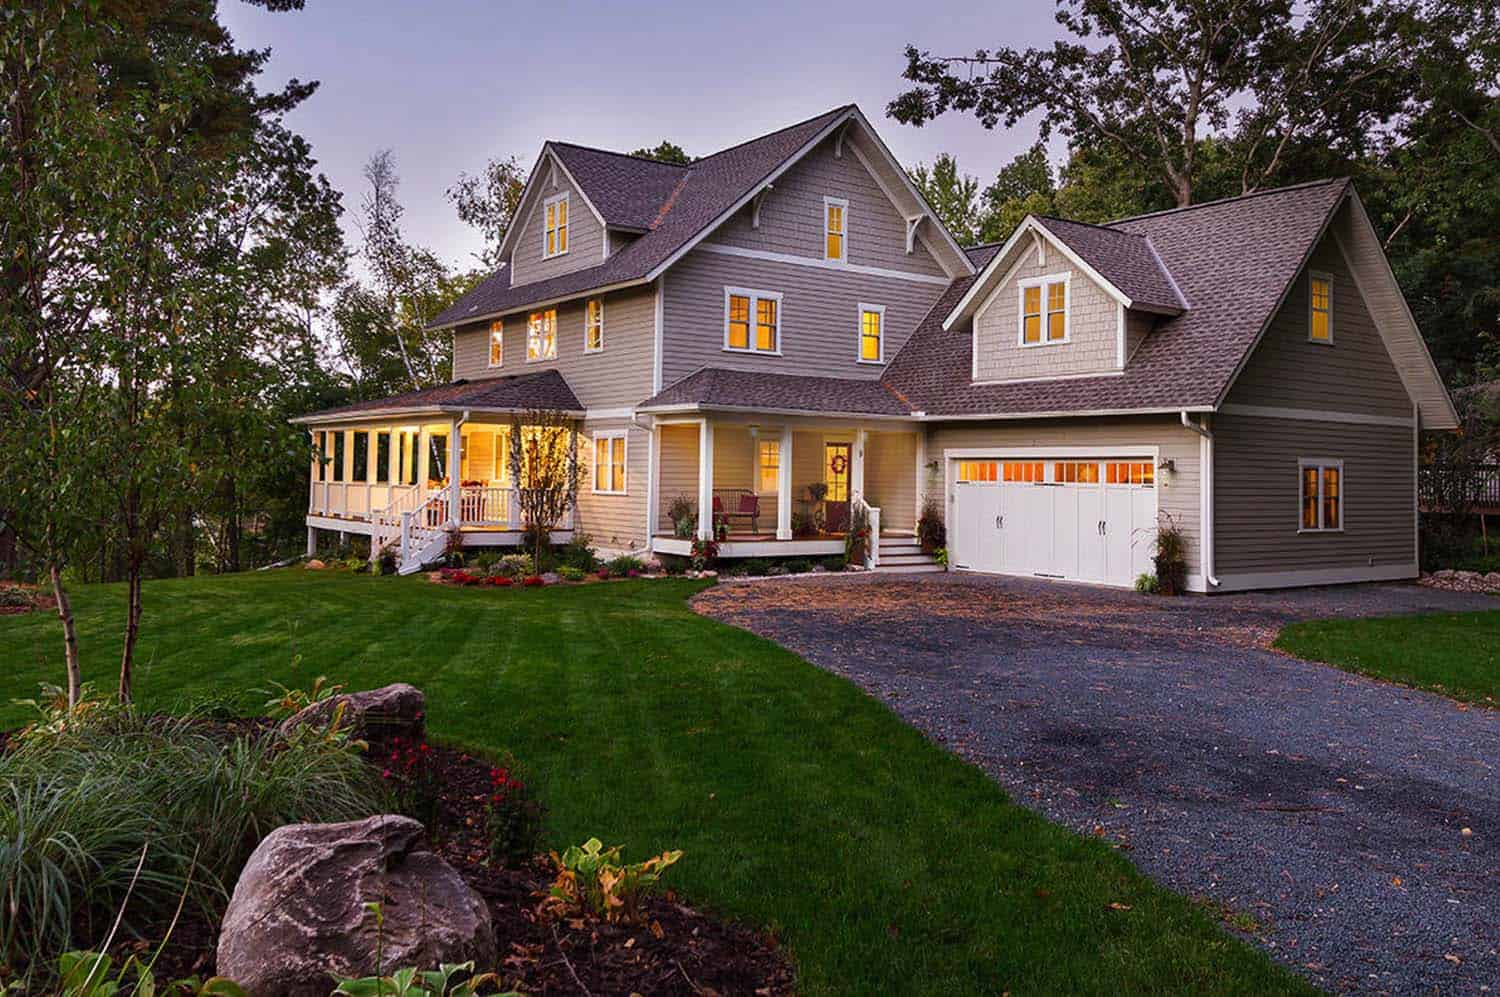 Charming lakeside farmhouse nestled on a wooded site in for 2 story modern farmhouse